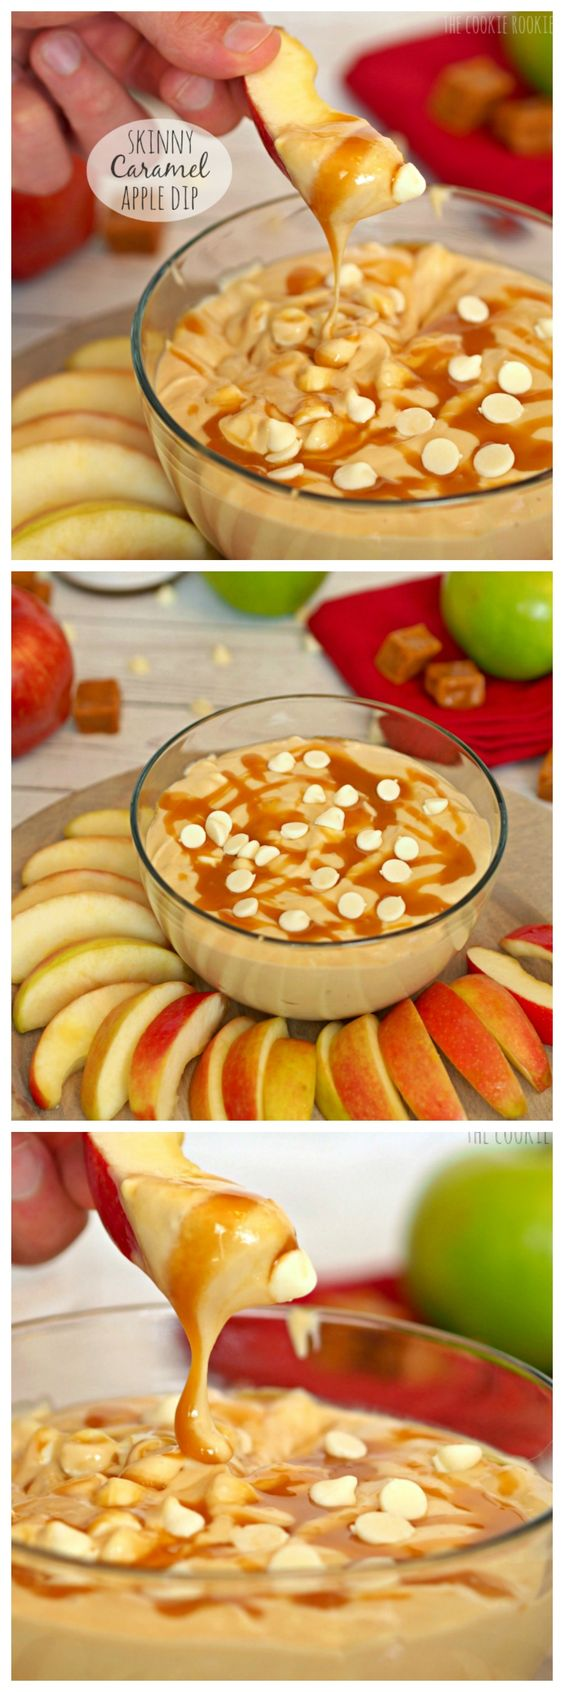 Skinny Caramel Apple Dip. SO easy and loved by both kids and adults! Perfect for back to school #easyrecipe #easy #skinny #healthy #kidfriendly - The Cookie Rookie: